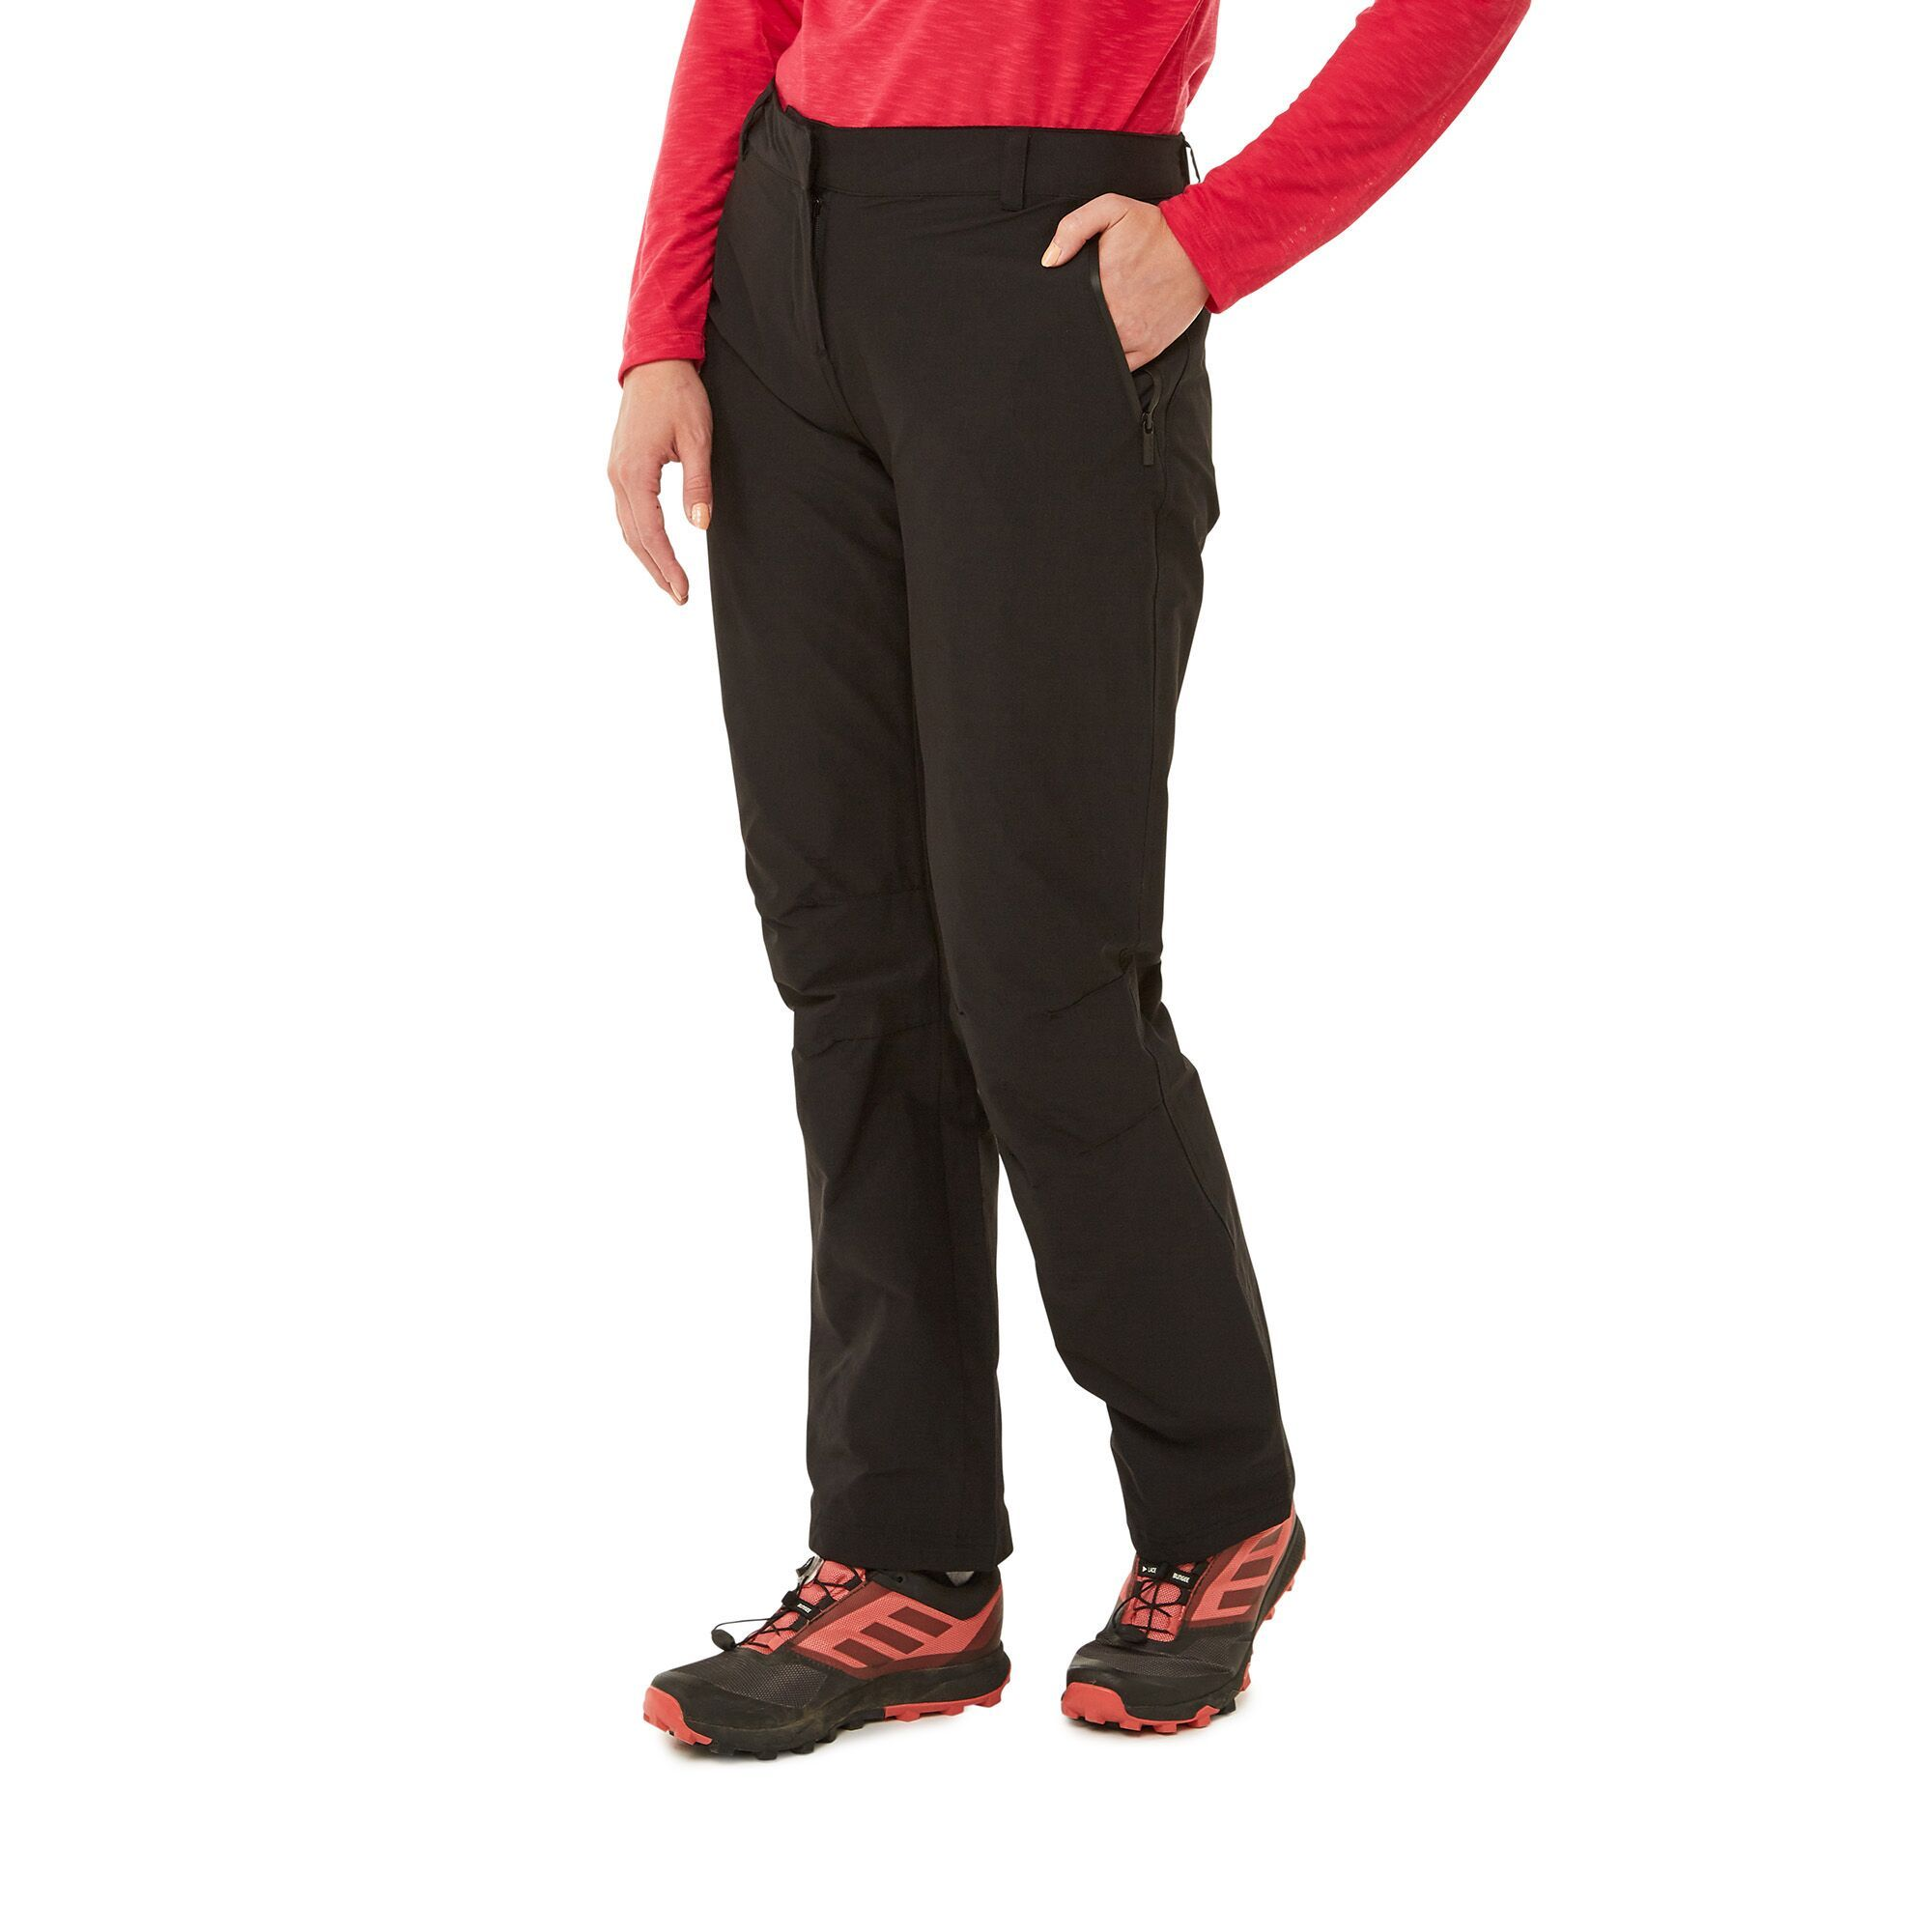 Craghoppers Womens Kiwi Pro Waterproof Trousers-Regular